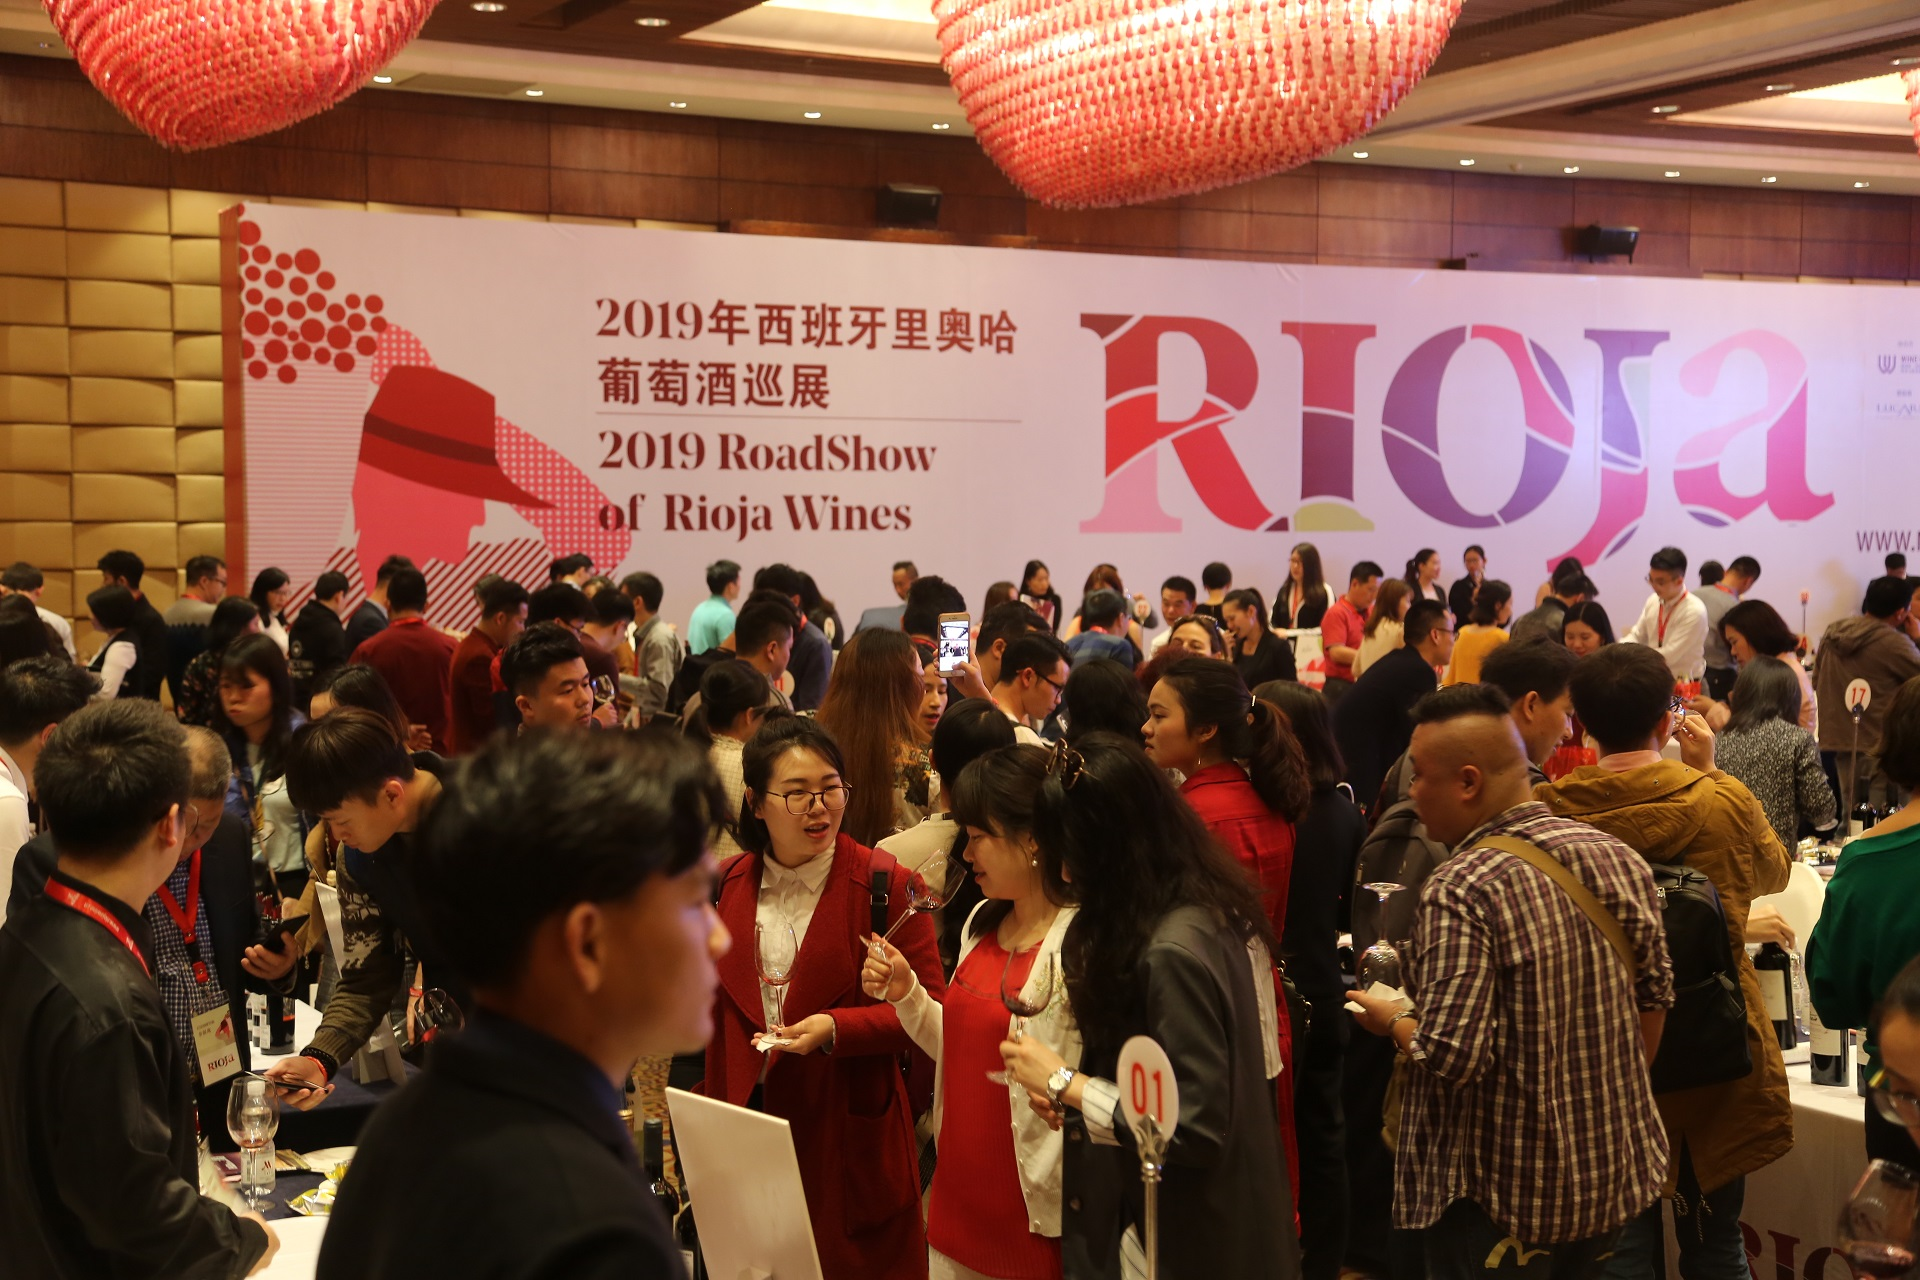 Growing interest in Rioja in China's interior